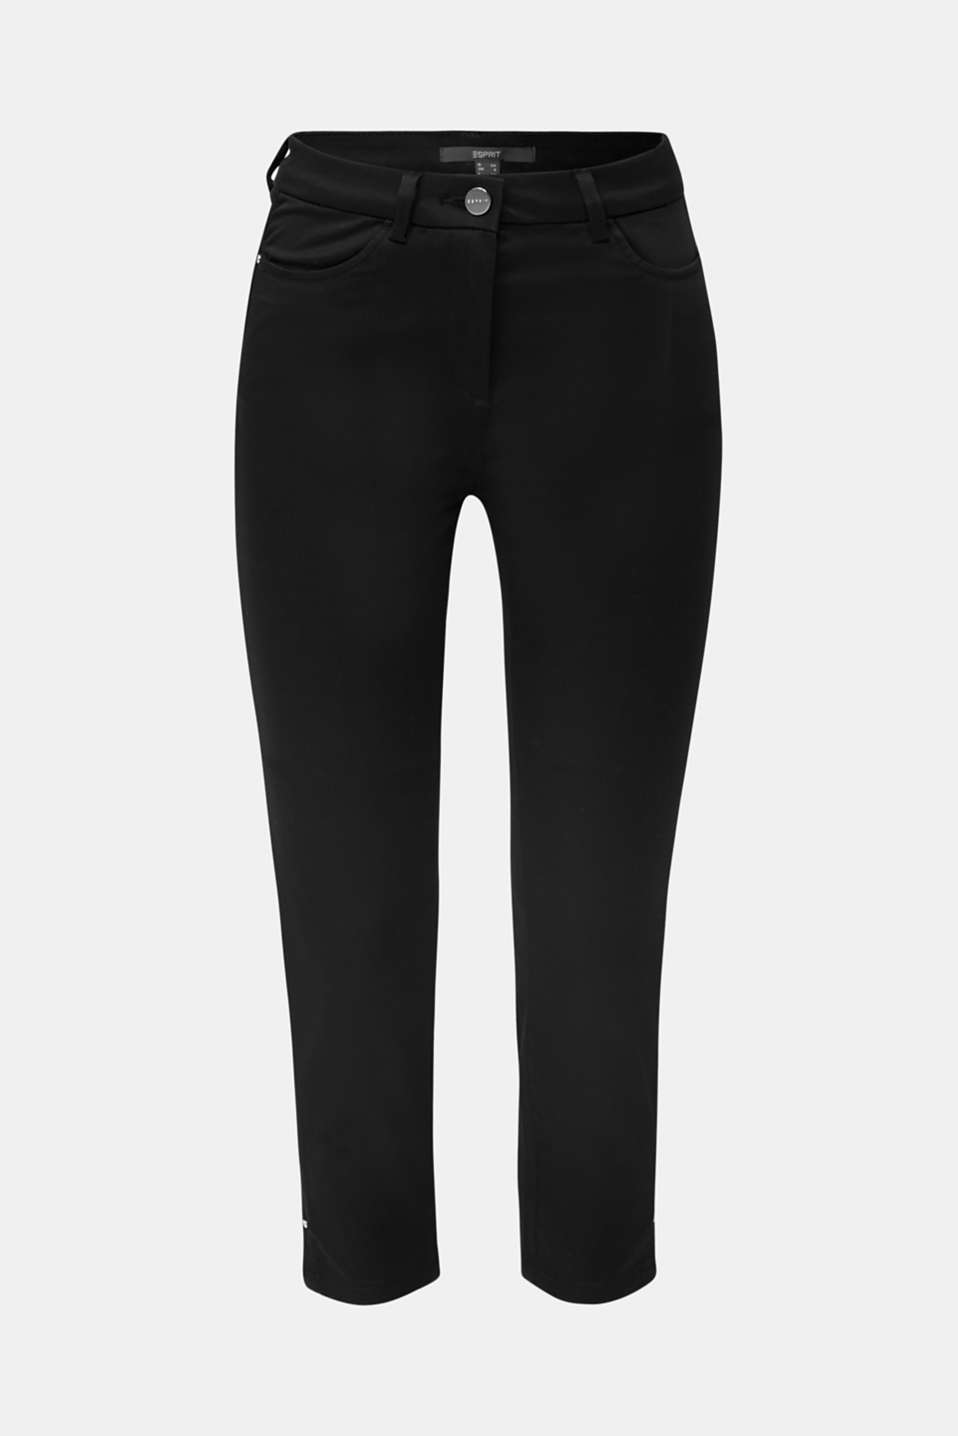 Knee-length satin business trousers, BLACK, detail image number 4